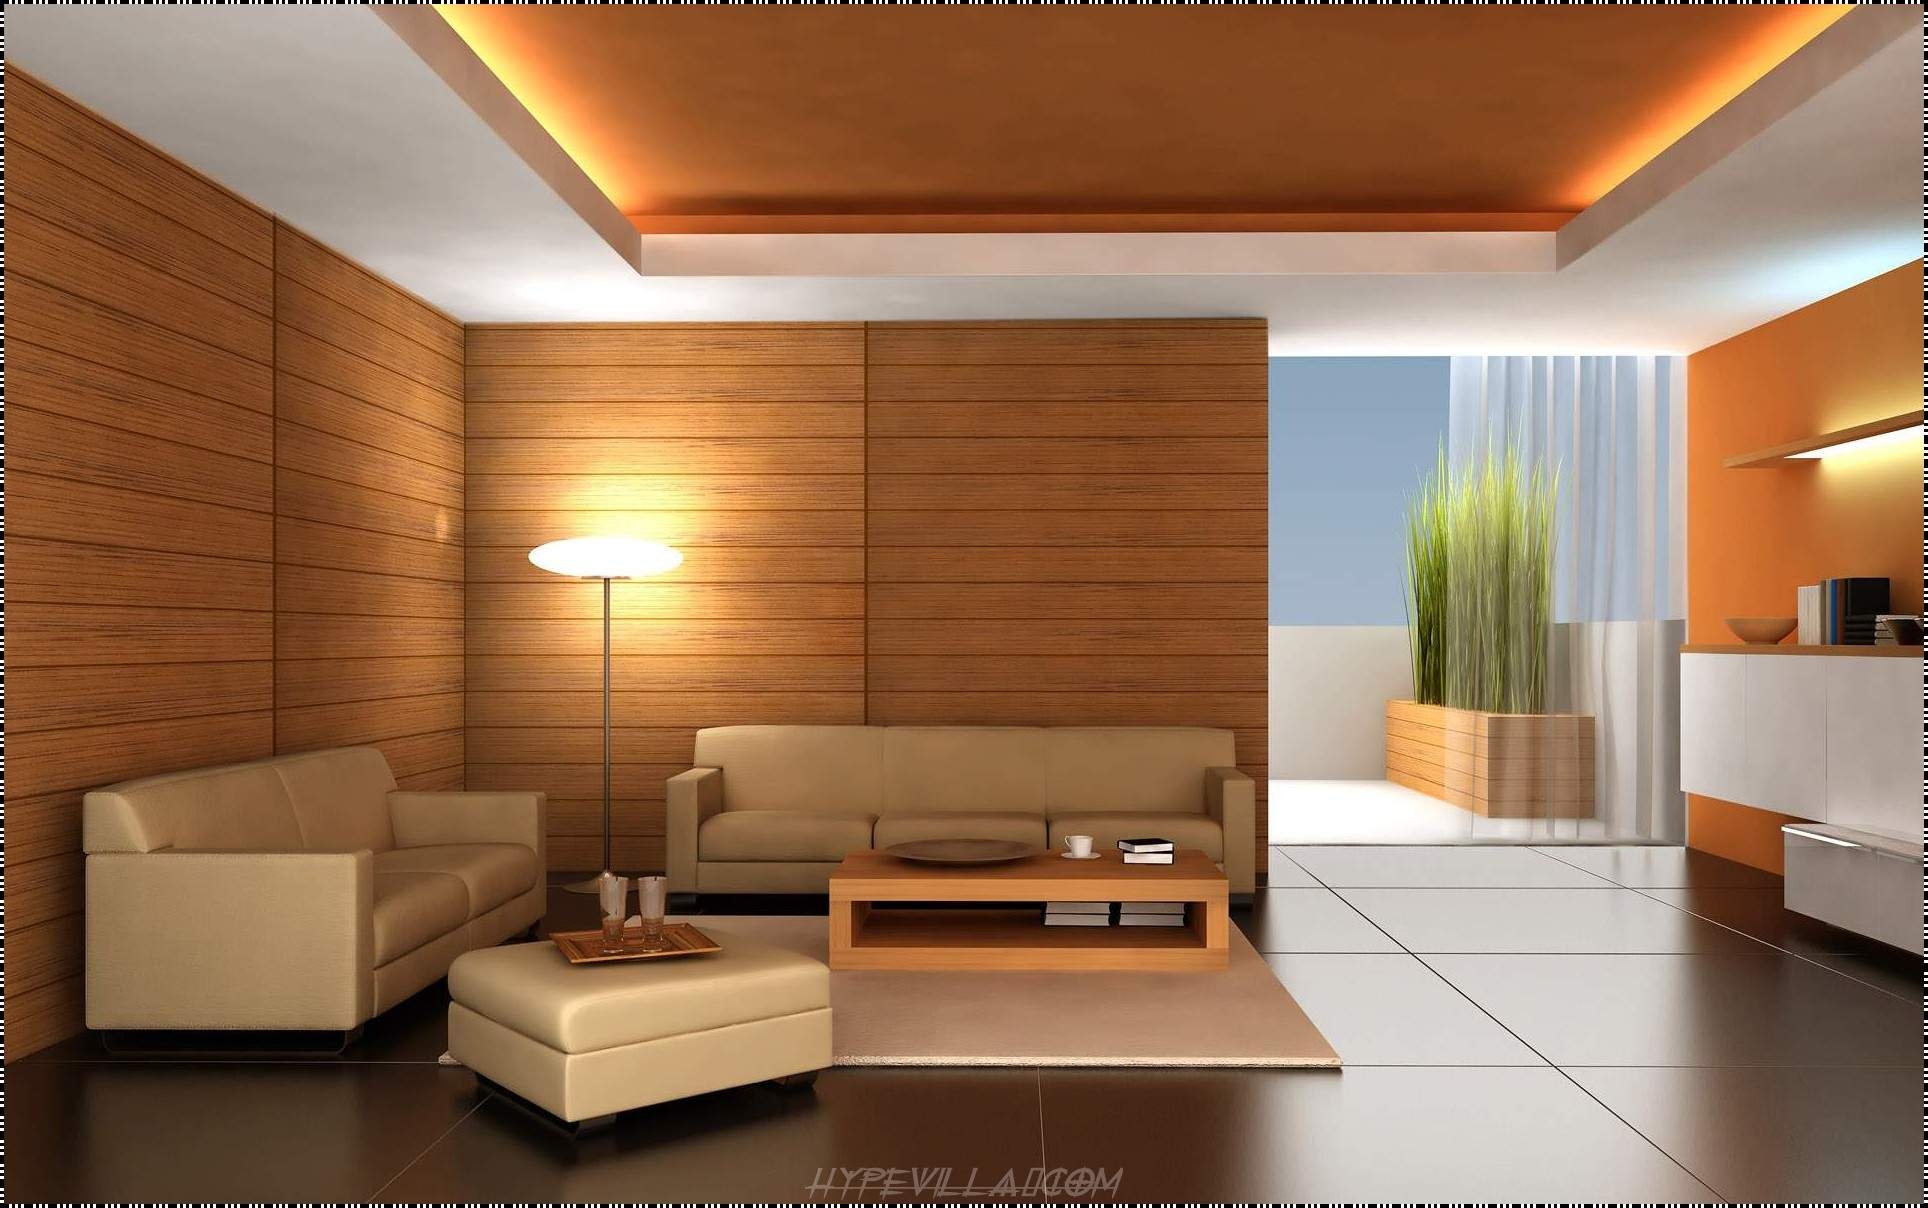 room home design interior ideas with wallpapers stylish home designs - Stylish Home Designs